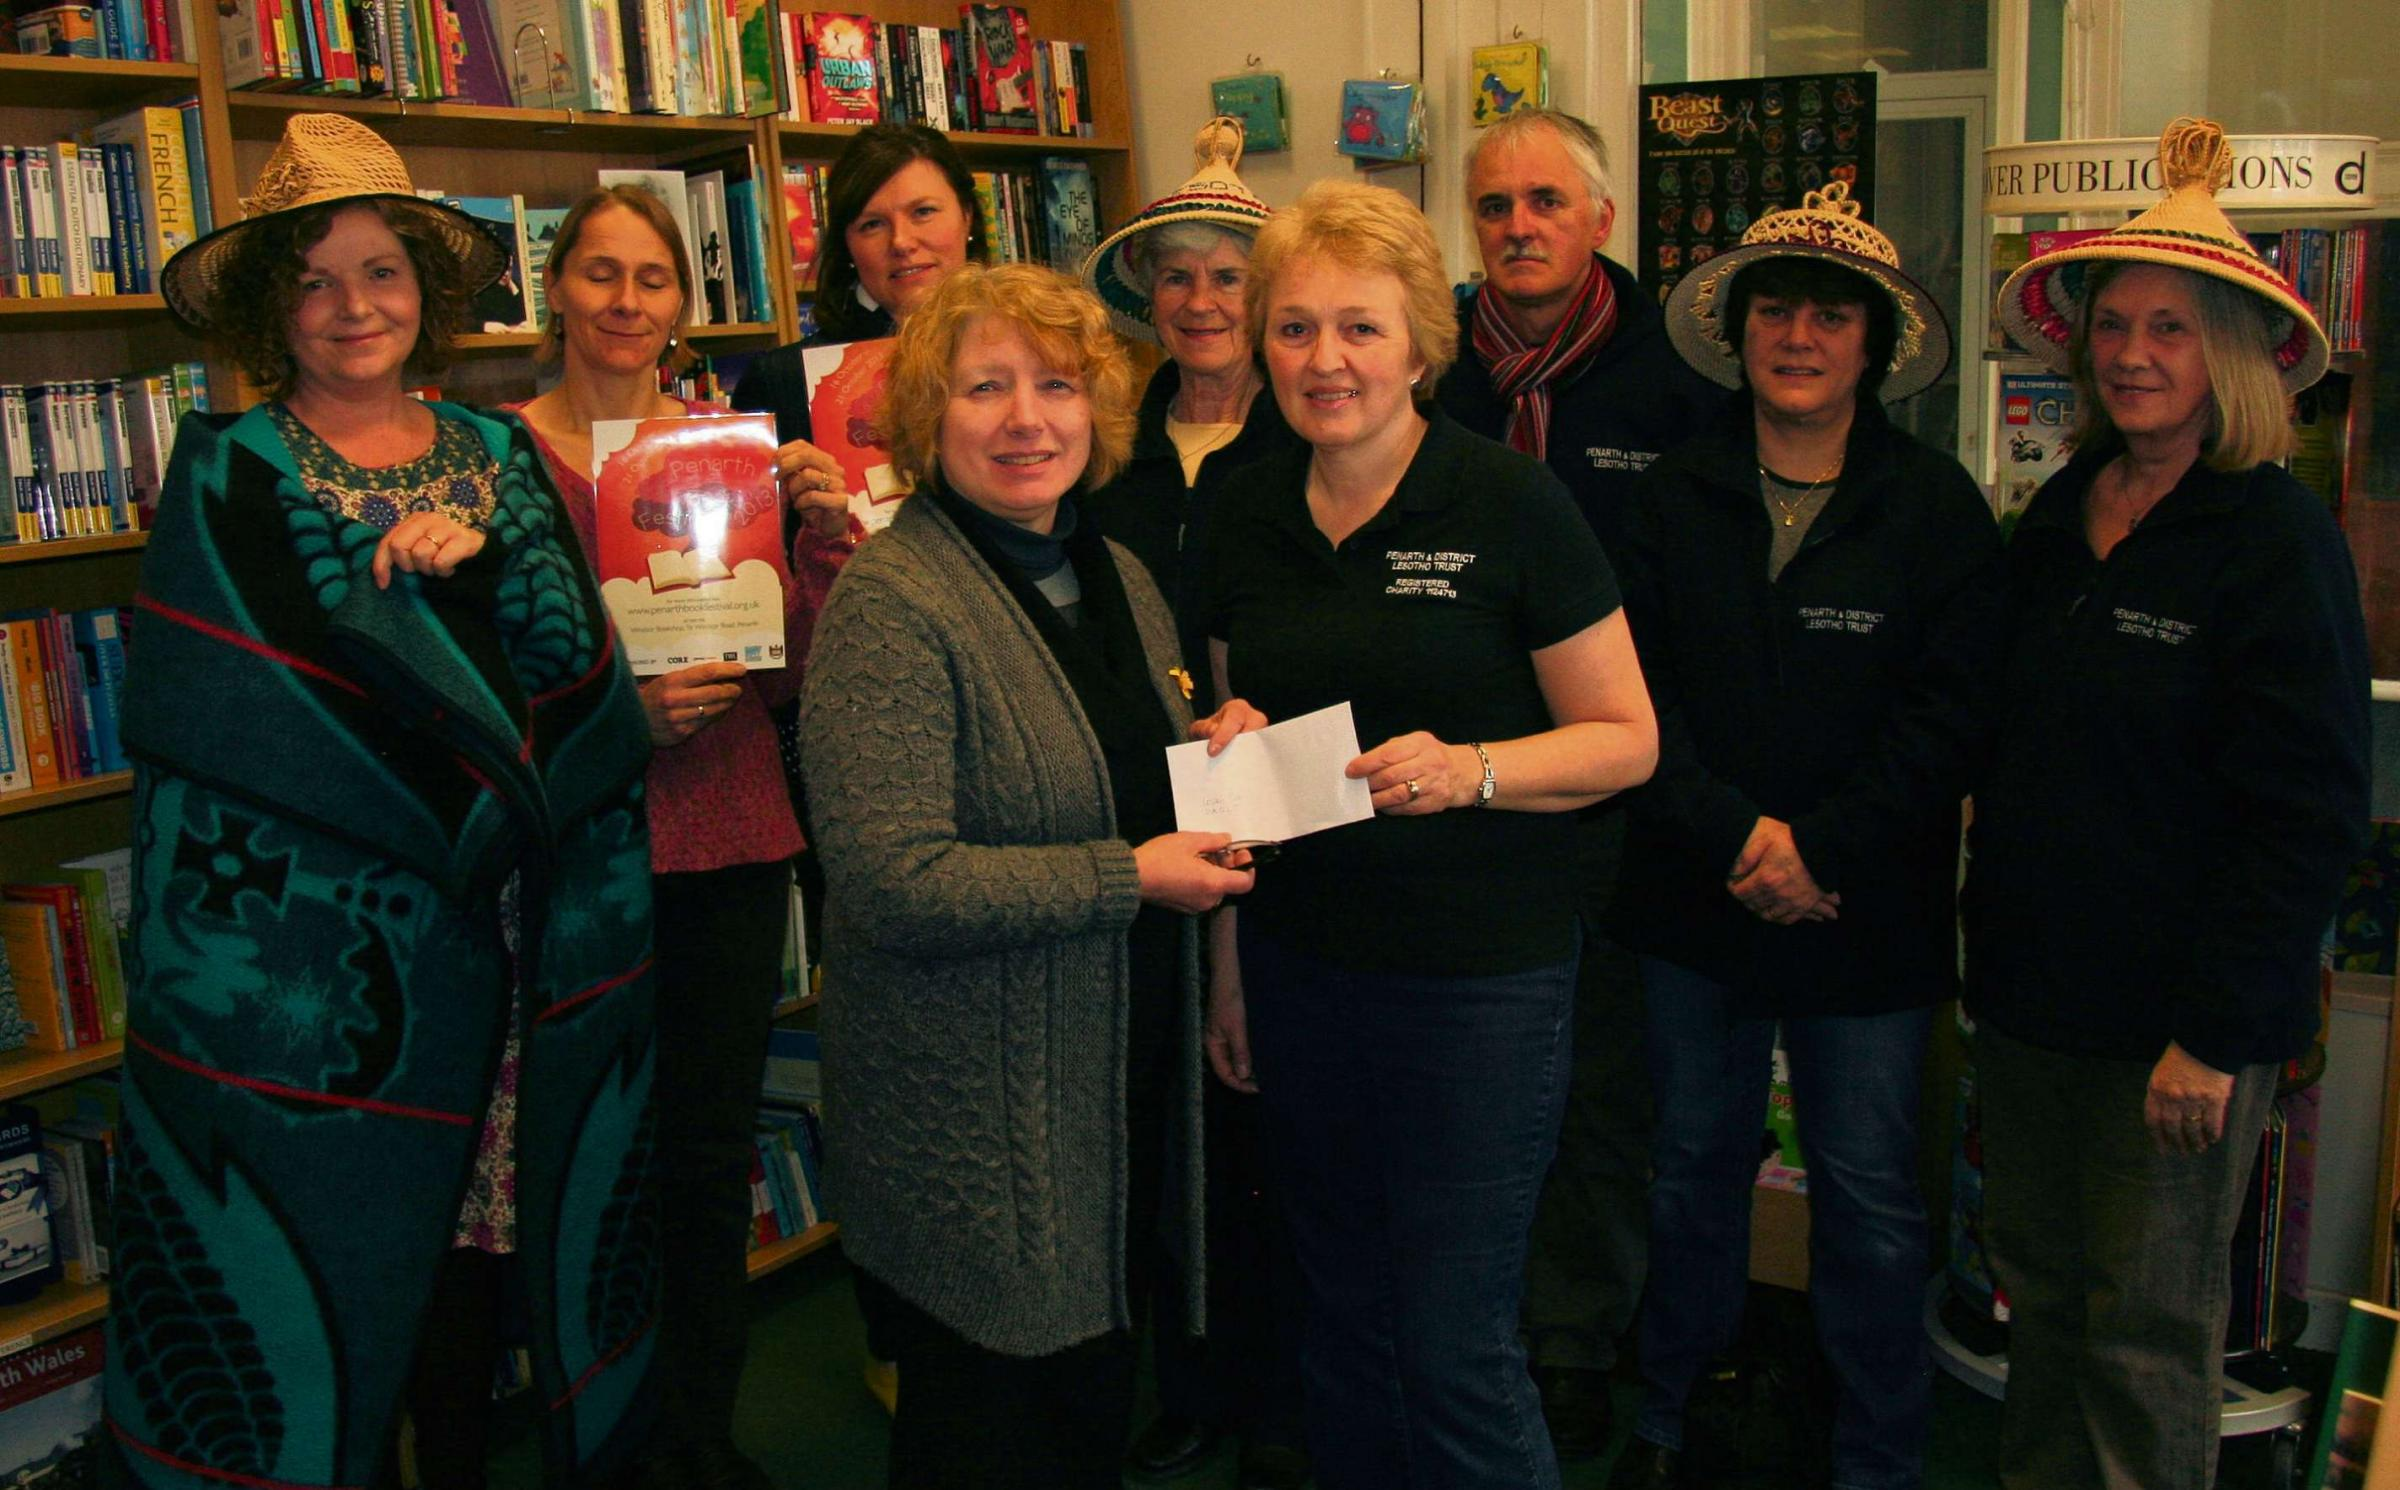 DONATION: (back row, left to right) Suki Flynn from PADLT, Mel Tuke Griffin and Fay Blakeley of the Penarth Book Festival, Rosemary Dix, Rev. Peter Cox, Tracey Graham, Mary Anne Marsden from PADLTFront: Anne Hallett from The Penarth Book Festival team pre